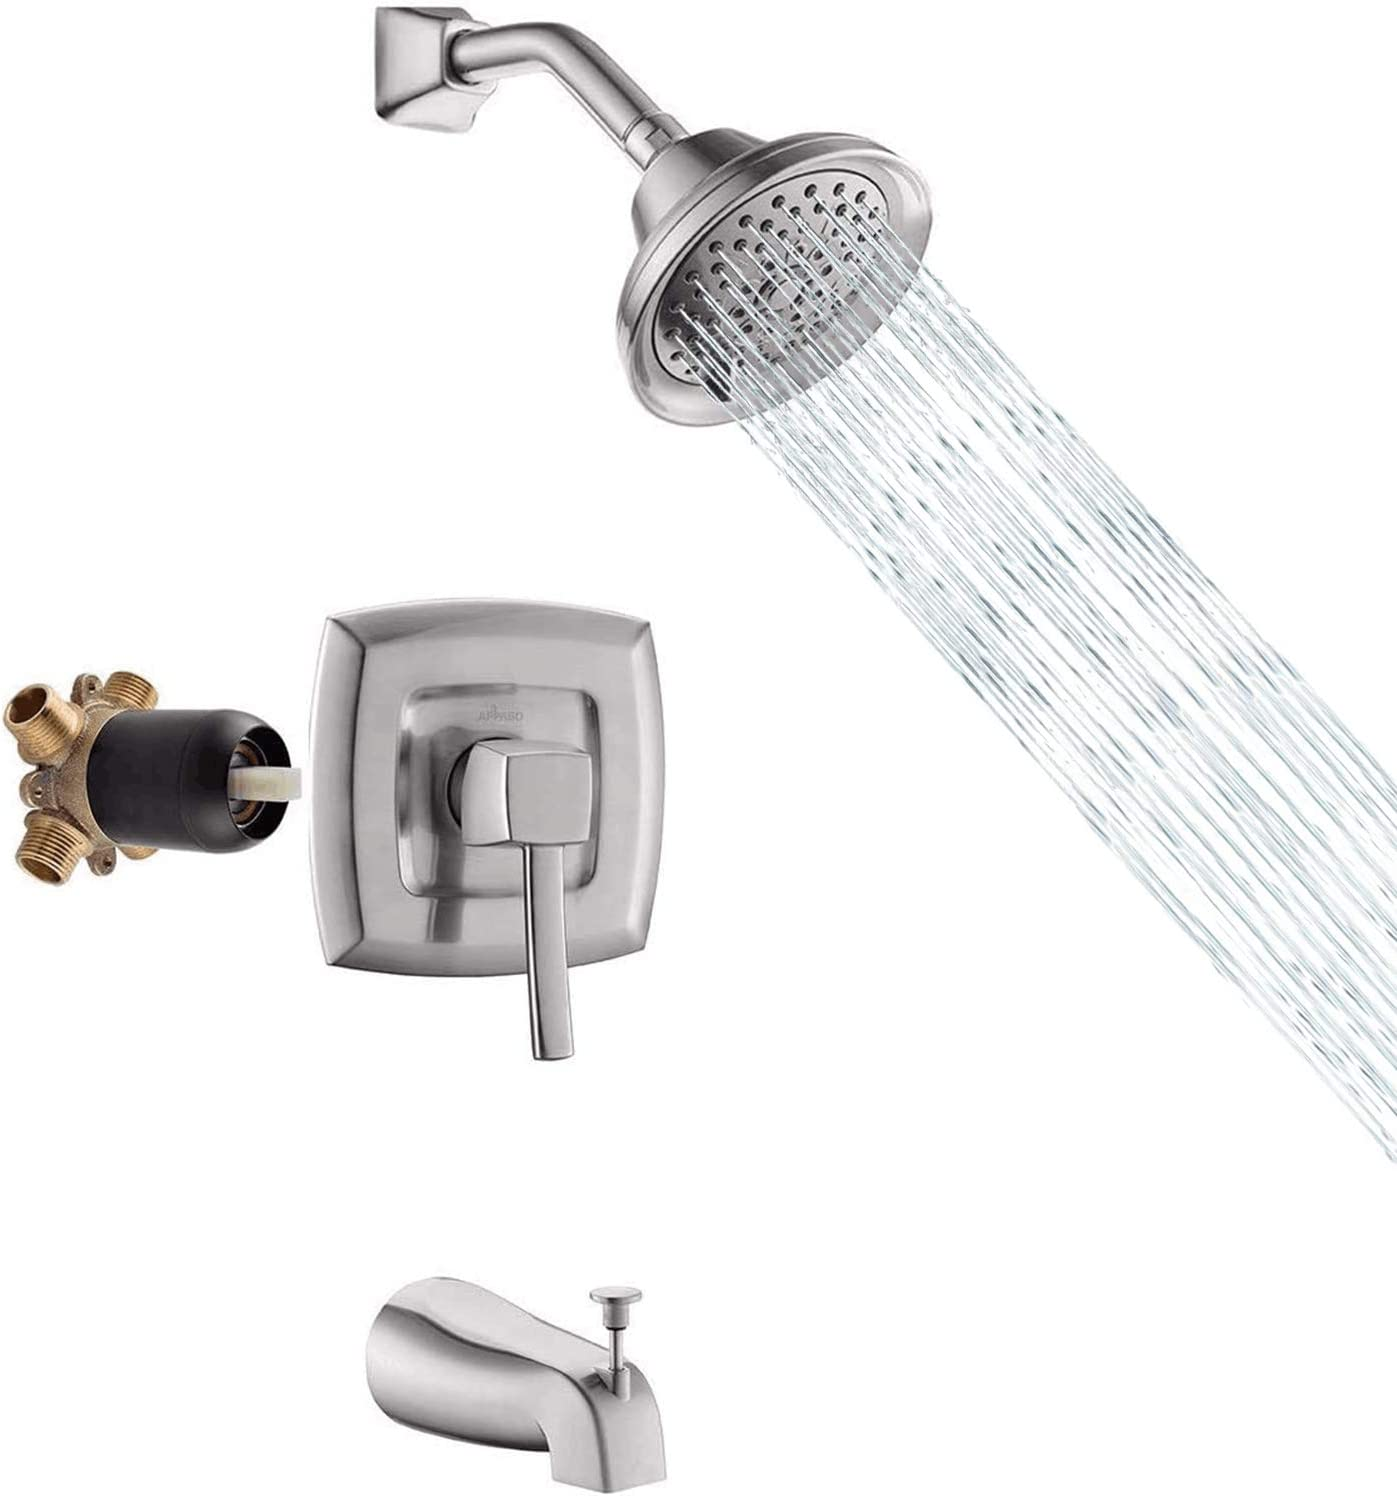 Buy APPASO Shower Faucet & Tub and Valve Set Brushed Nickel ...